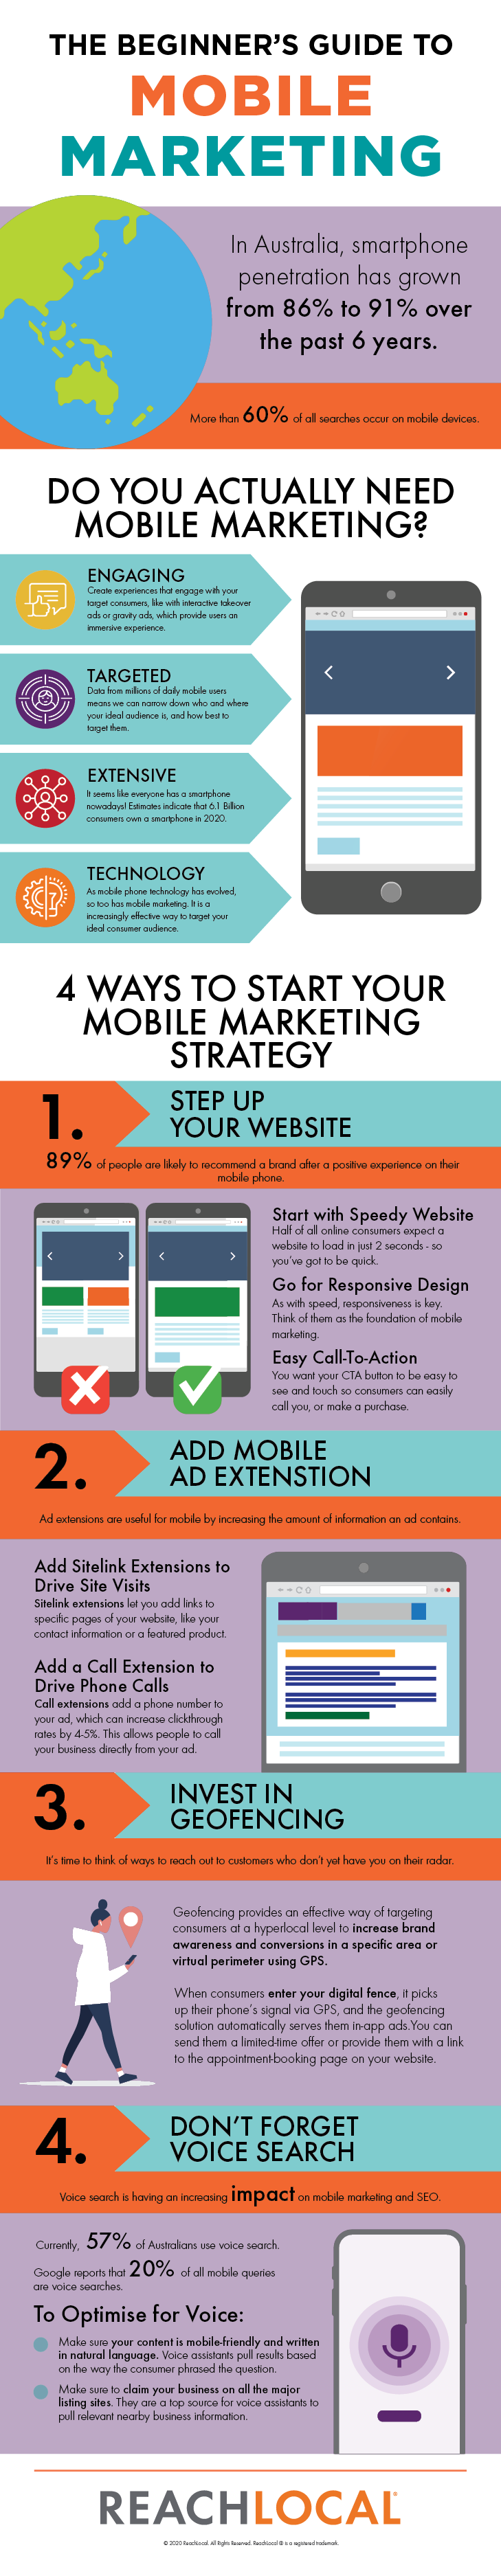 The Beginner's Guide to Mobile Marketing